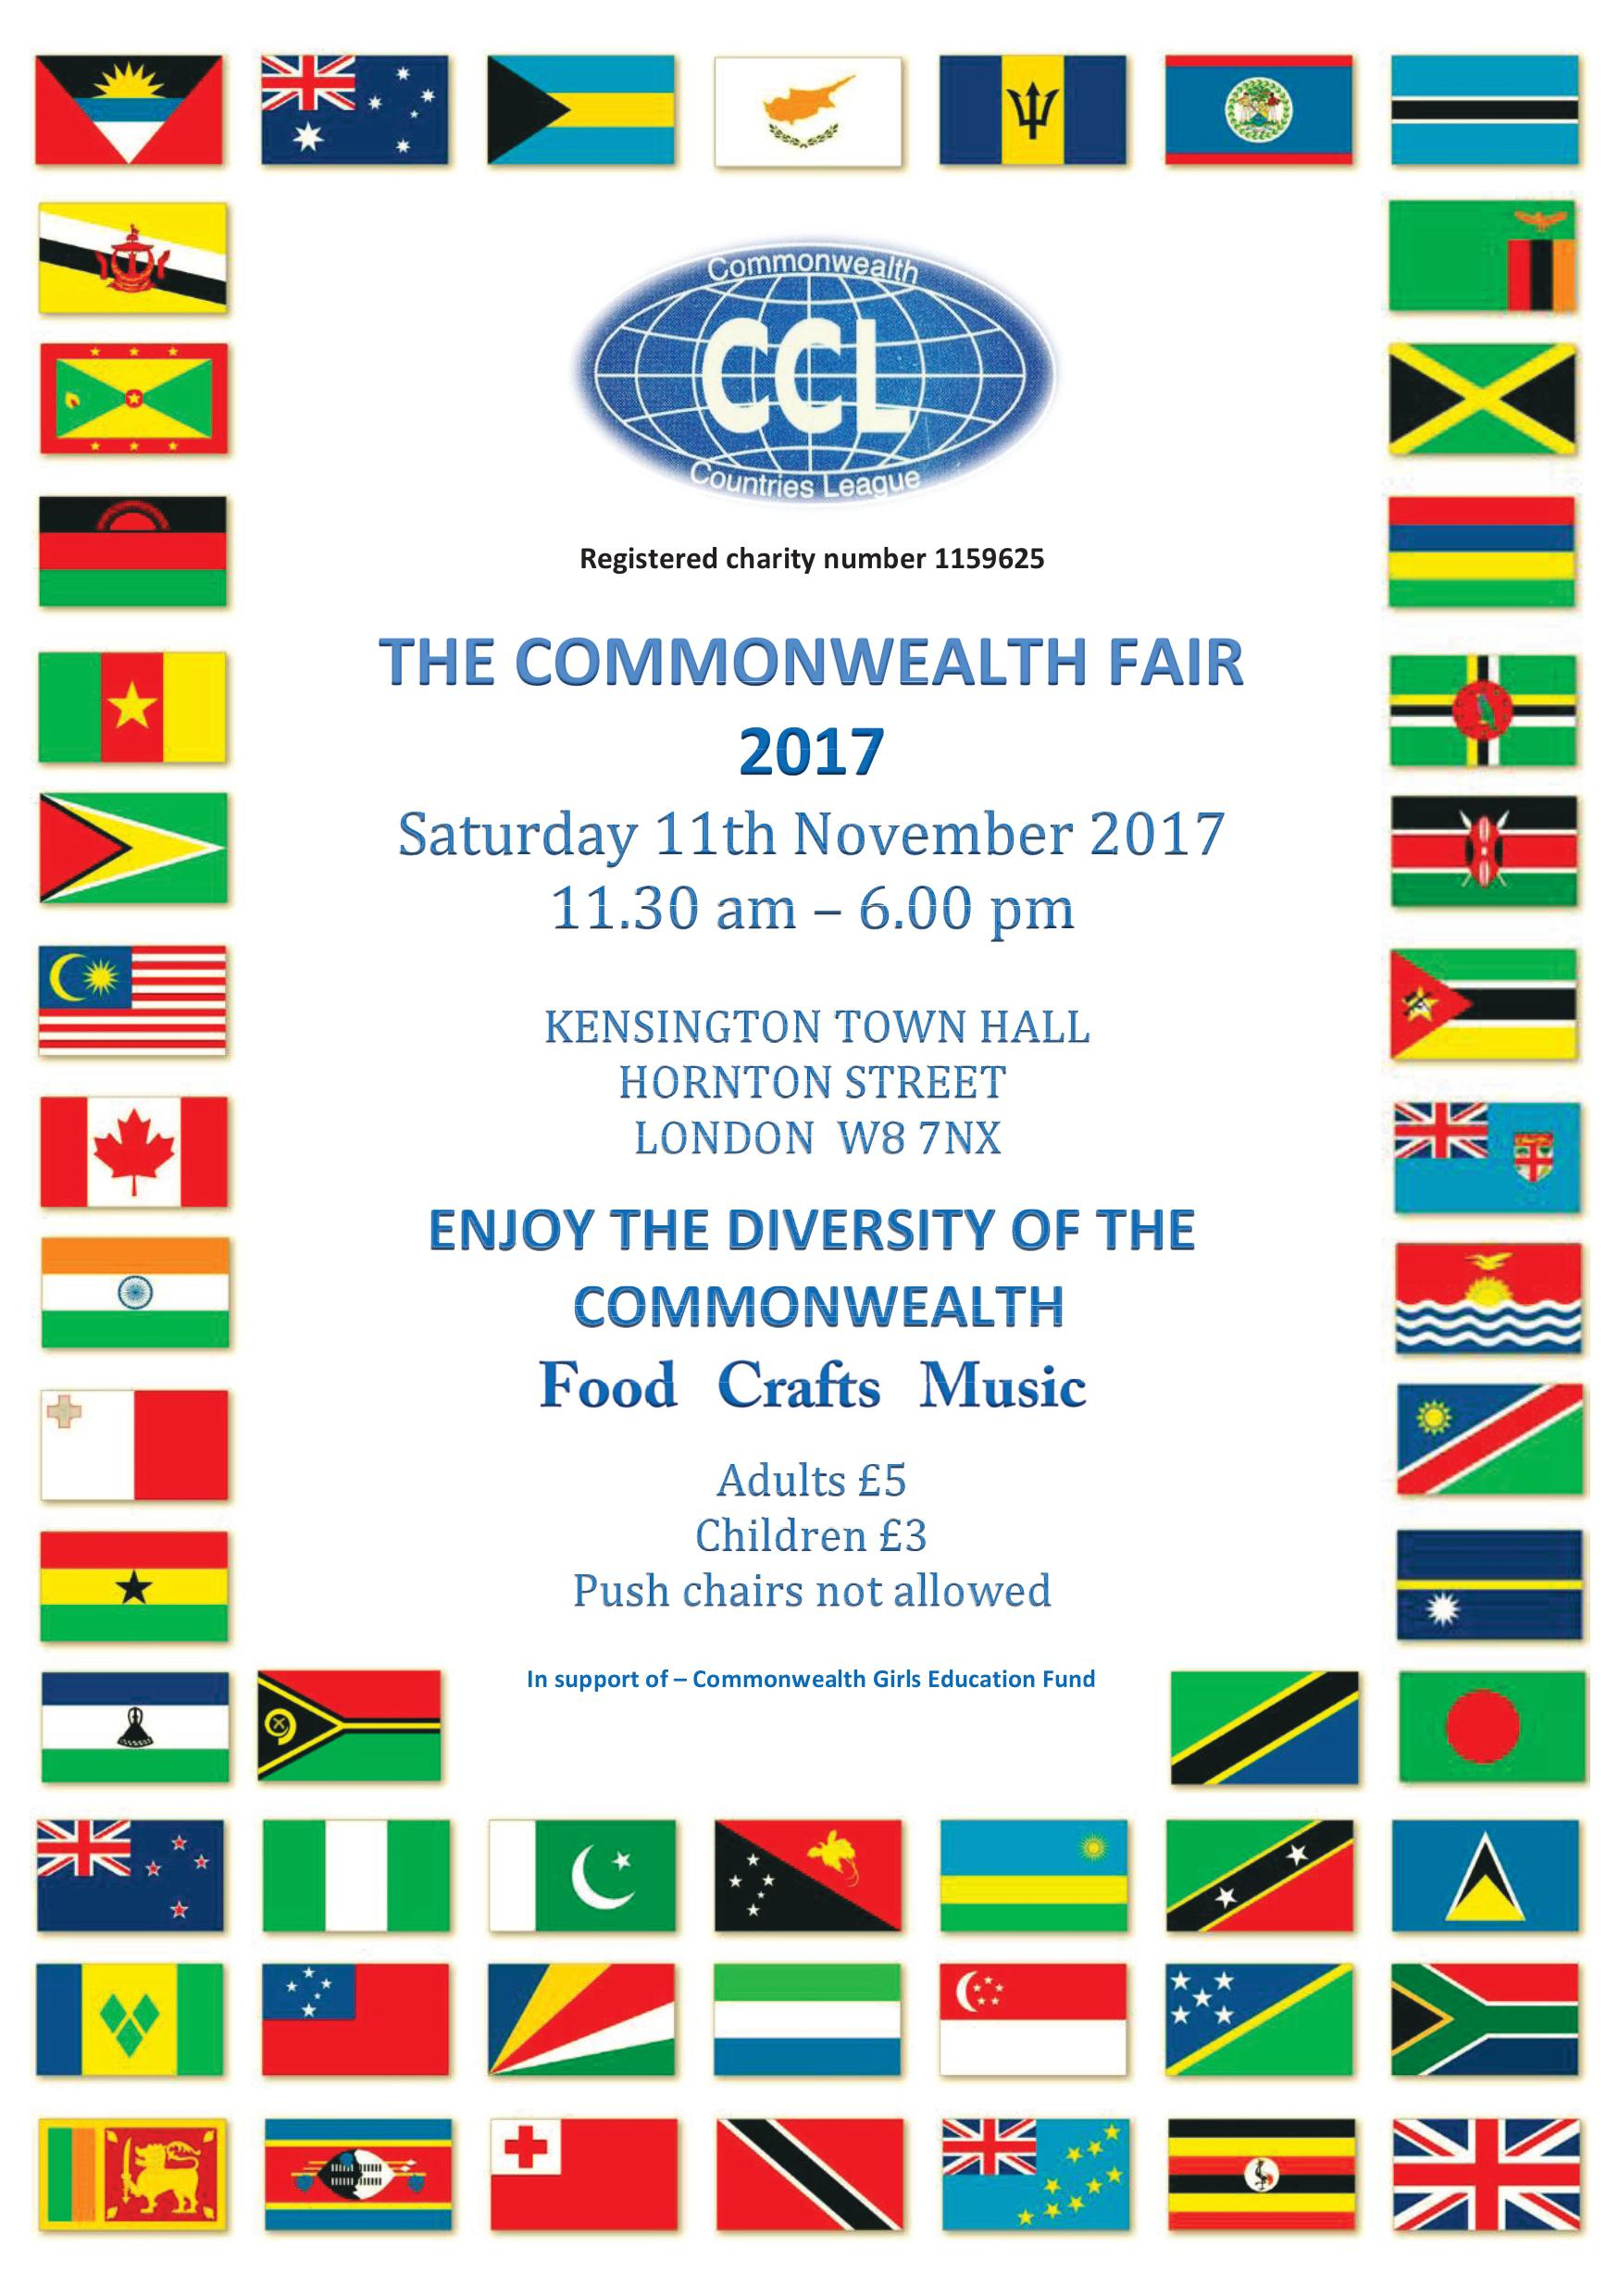 The Commonwealth Fair 2017